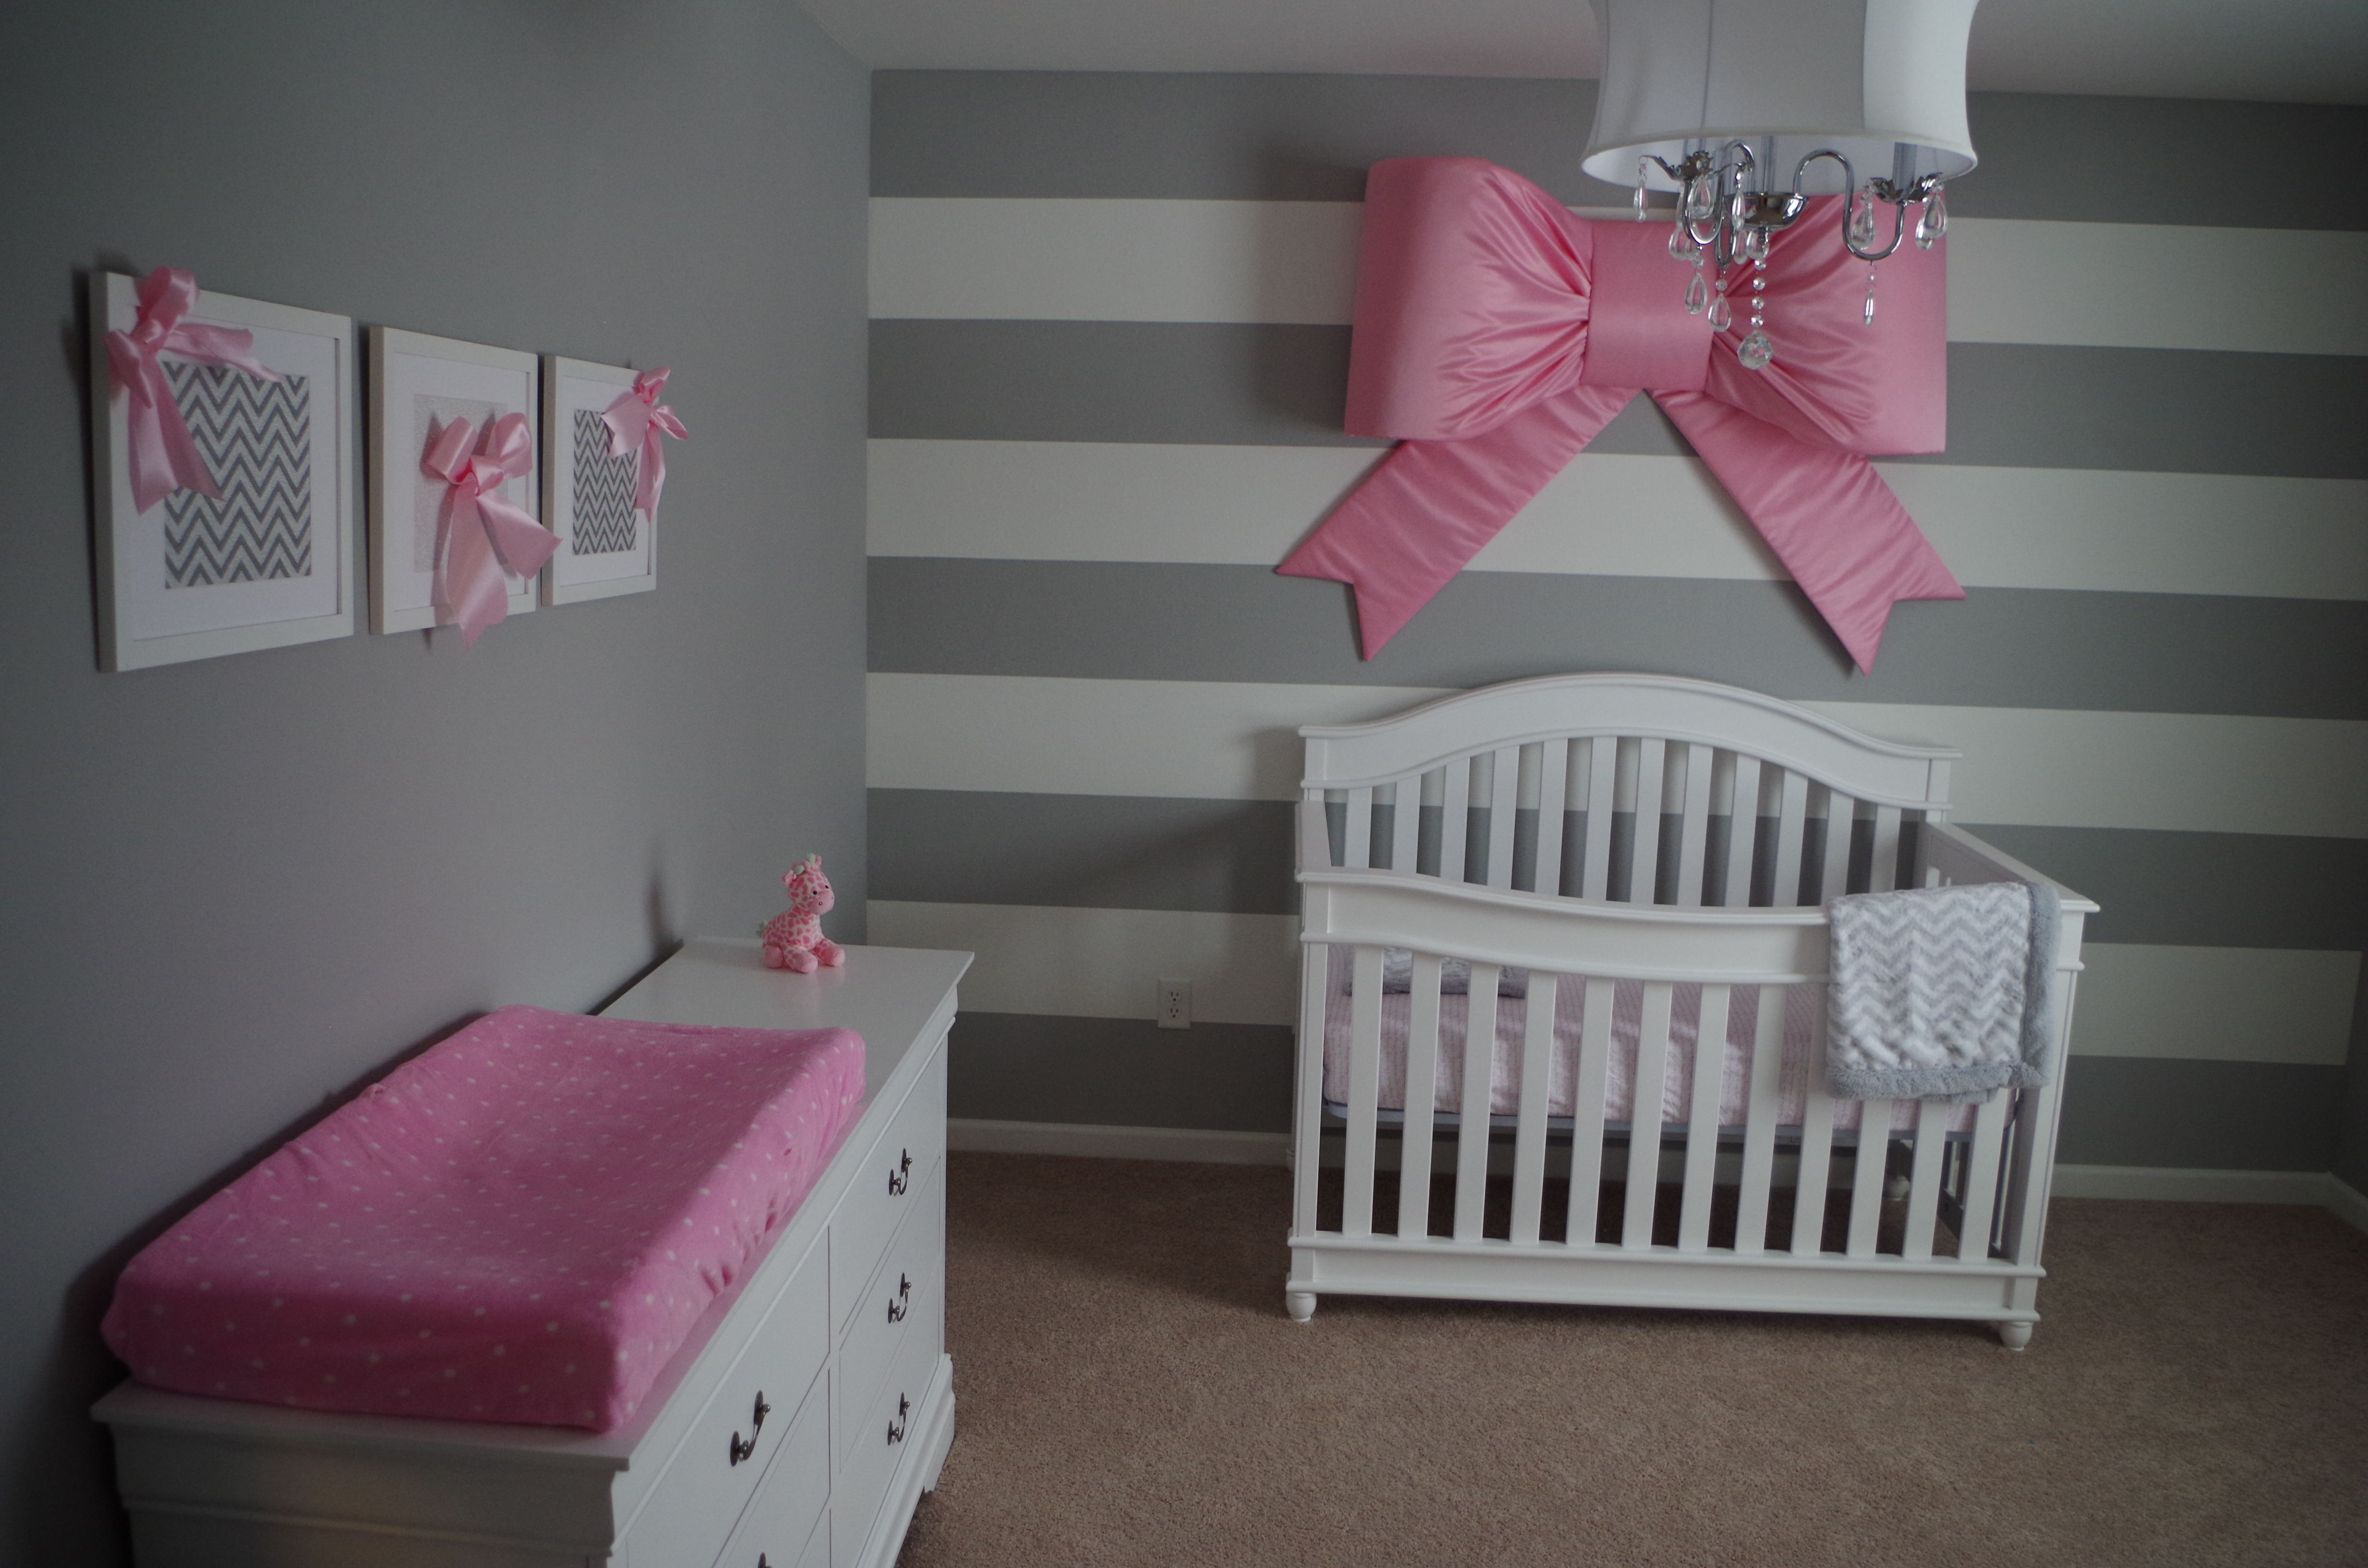 olivia 39 s nursery grey and white stripes with pink bows dream house pinterest olivia d 39 abo. Black Bedroom Furniture Sets. Home Design Ideas